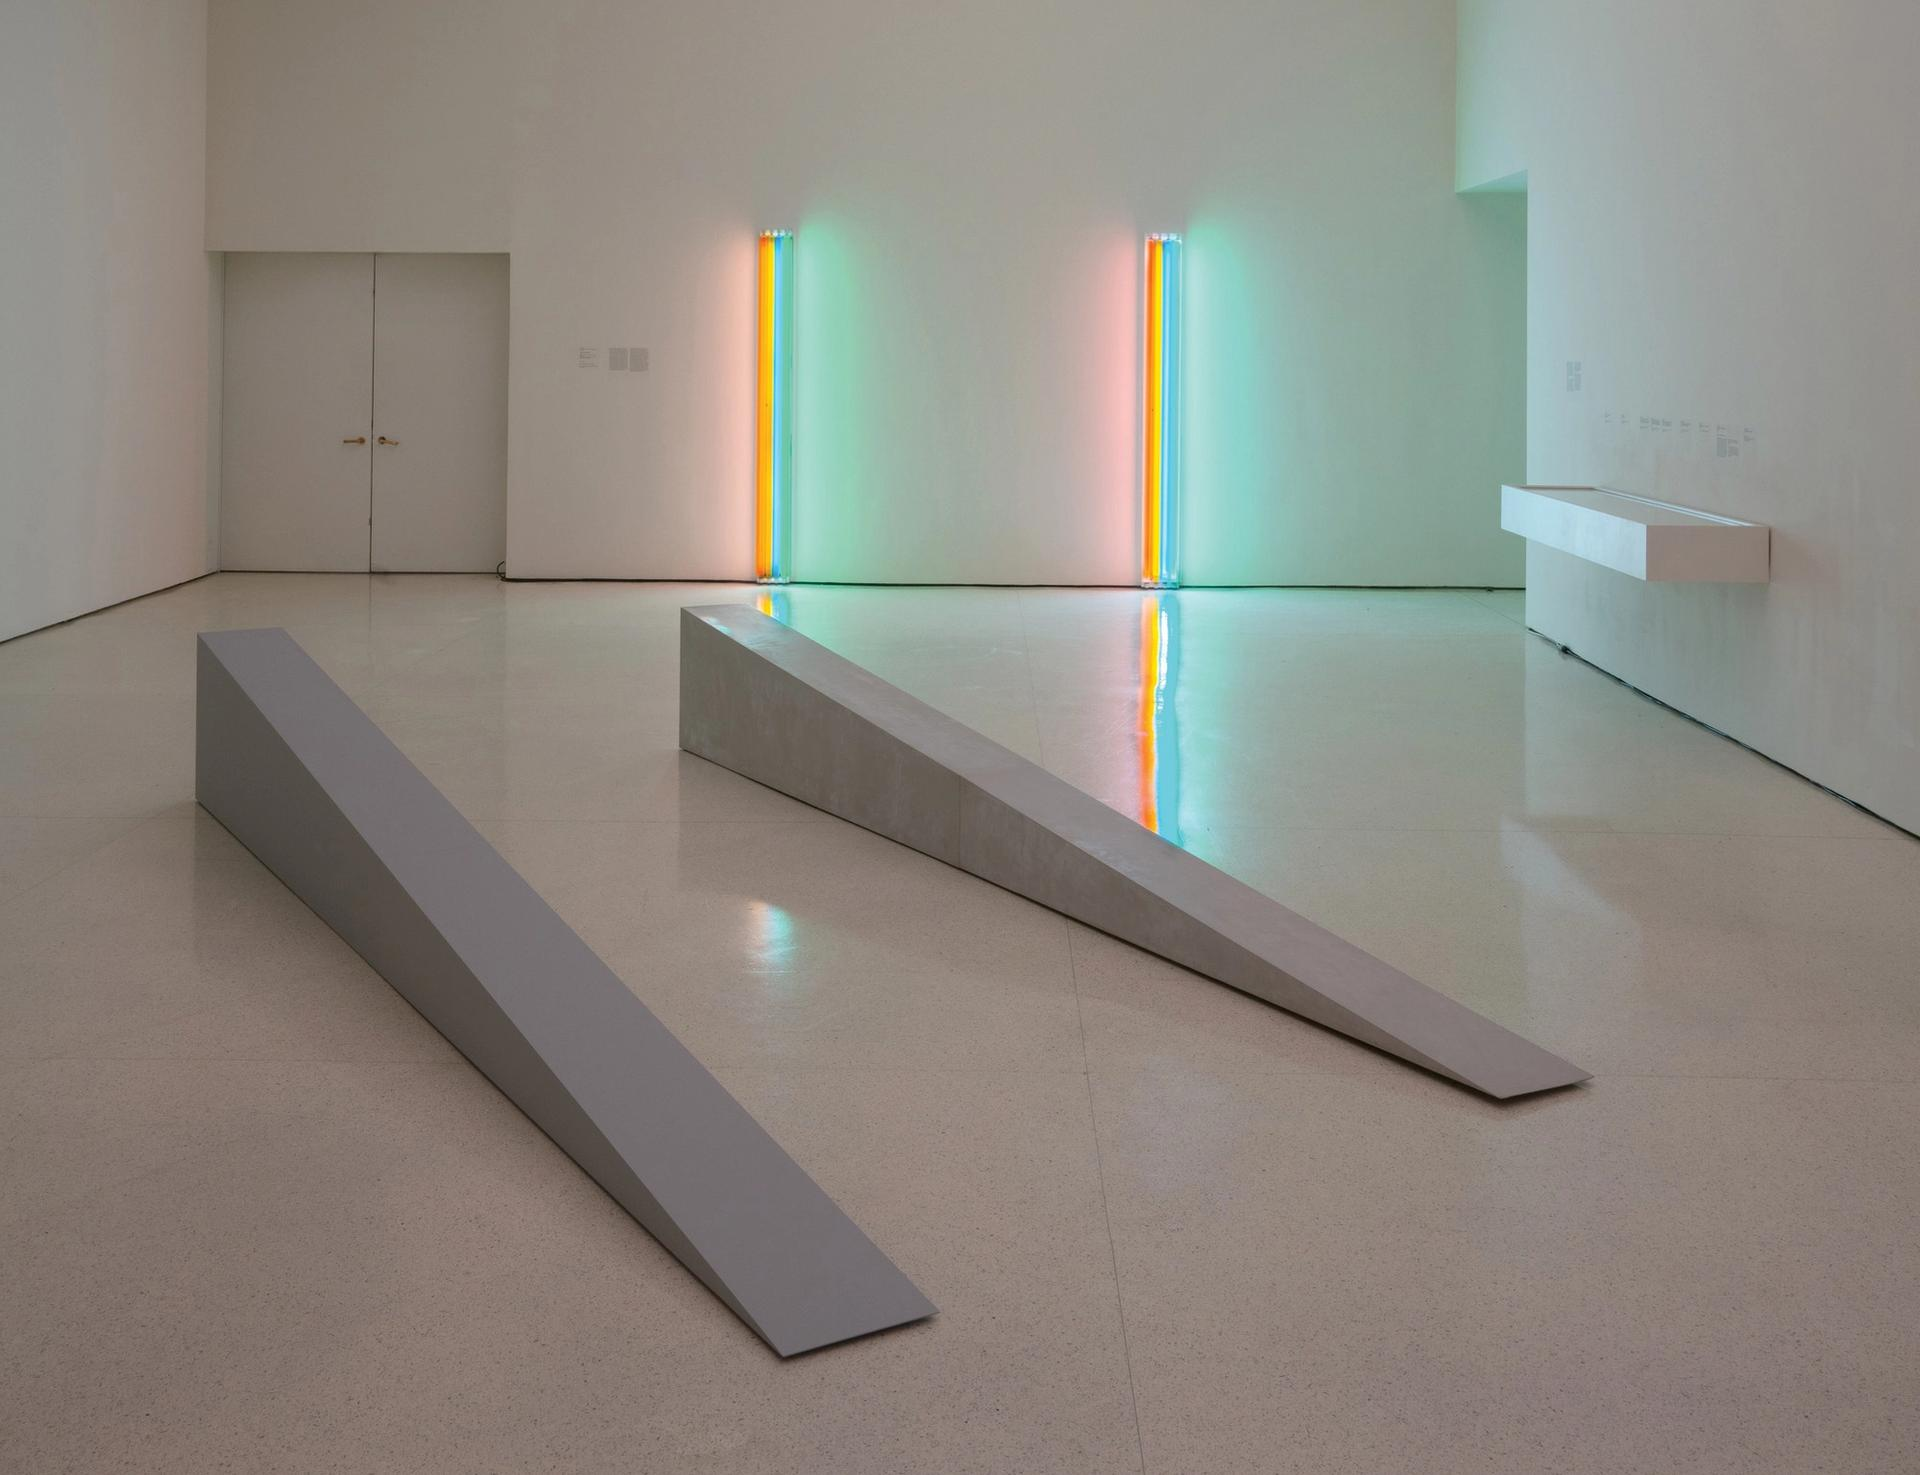 In foreground, two fabrications of Robert Morris's Untitled (Door Stop), 1965. (On left: 2018 artist-supervised, museum-made plywood fabrication; on right: 1965 fiberglass fabrication).  On far wall: two fabrications of Dan Flavin's Untitled (to Henri Matisse) 1964. (On left: historical fabrication received from Panza; right: 1995 fabrication produced in coordination with the Flavin studio) David Heald/© Solomon R. Guggenheim Foundation, New York